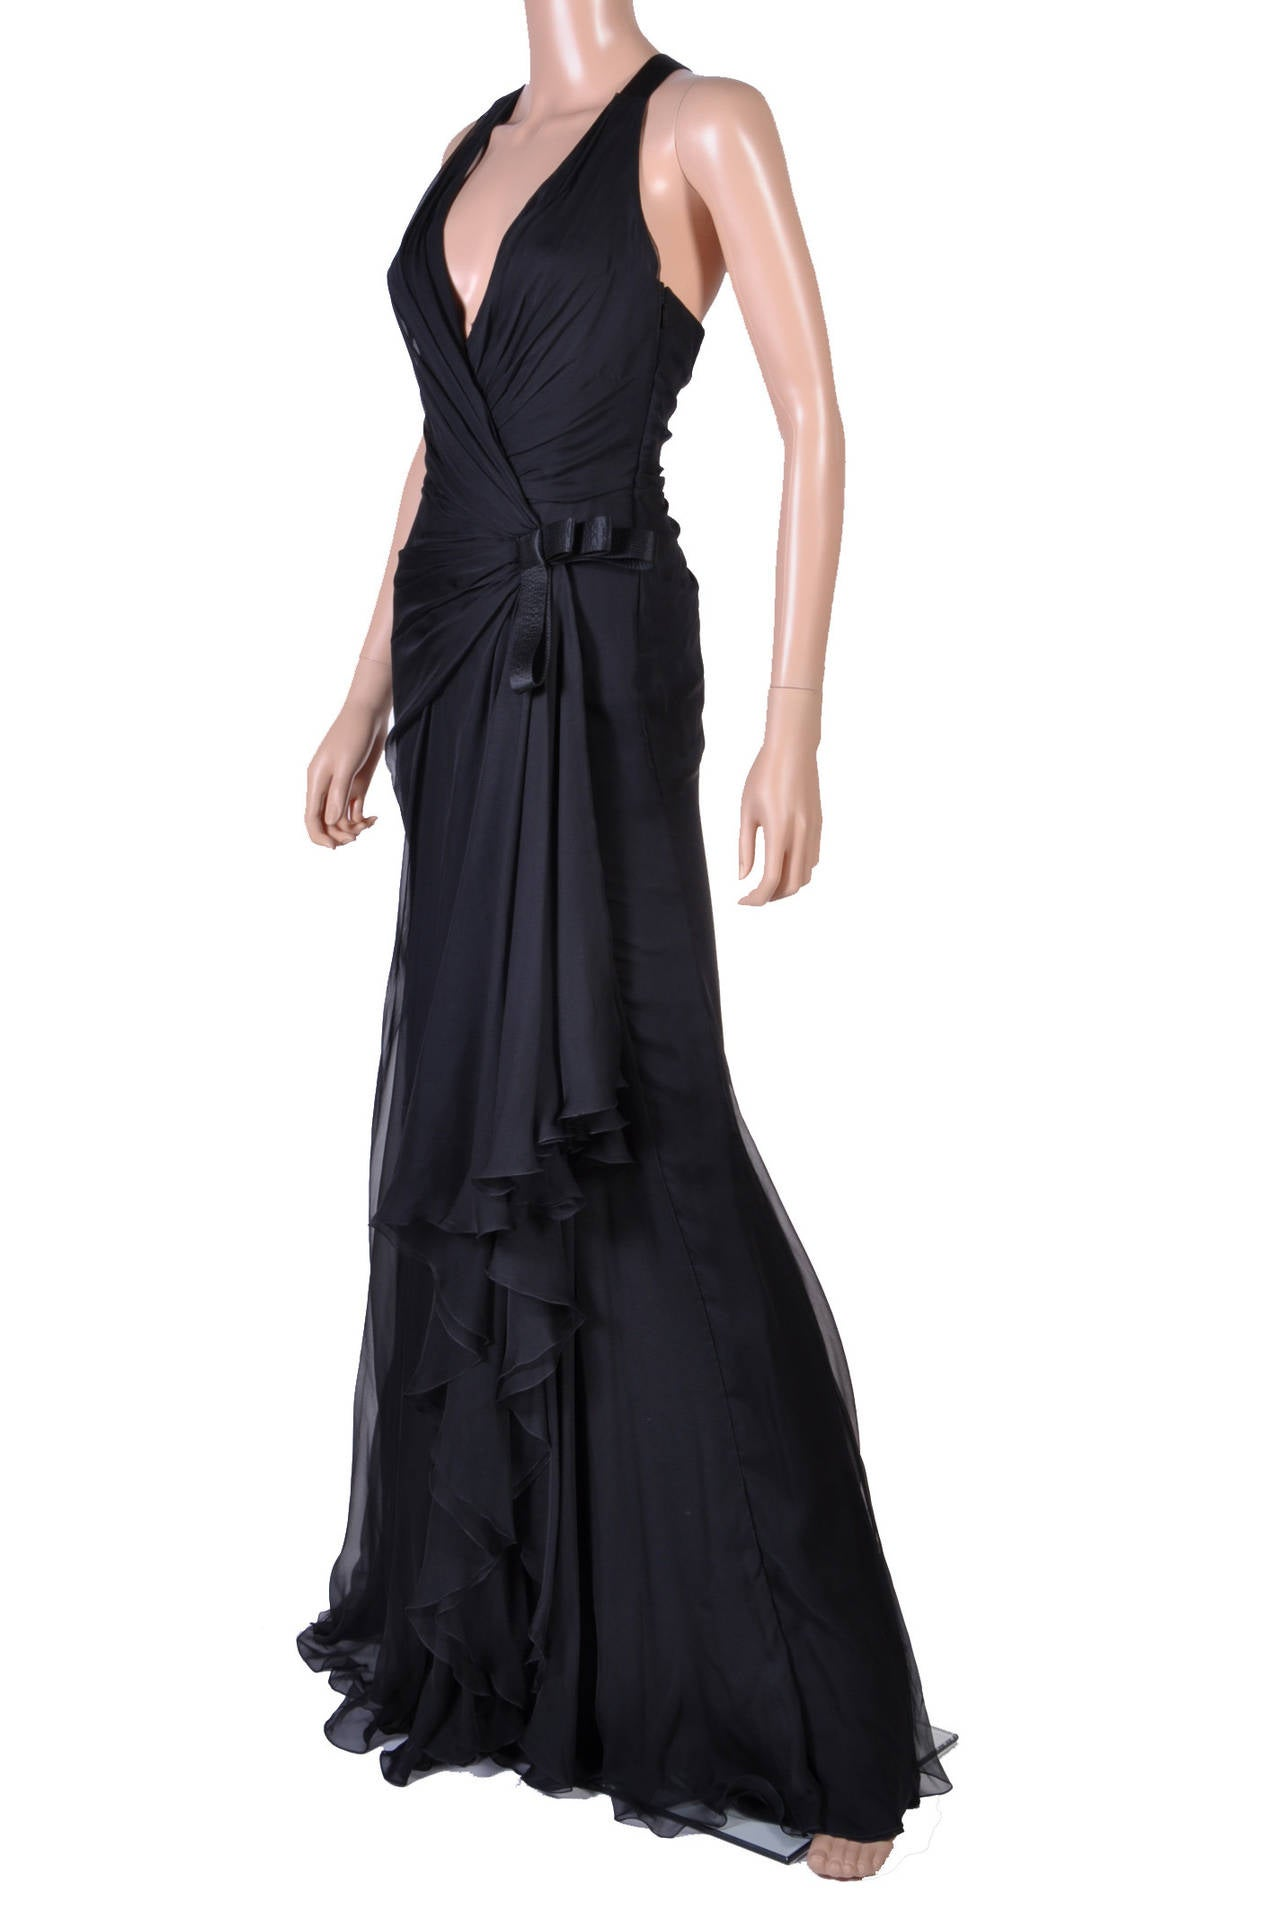 New VERSACE Black Chiffon Silk Gown 3